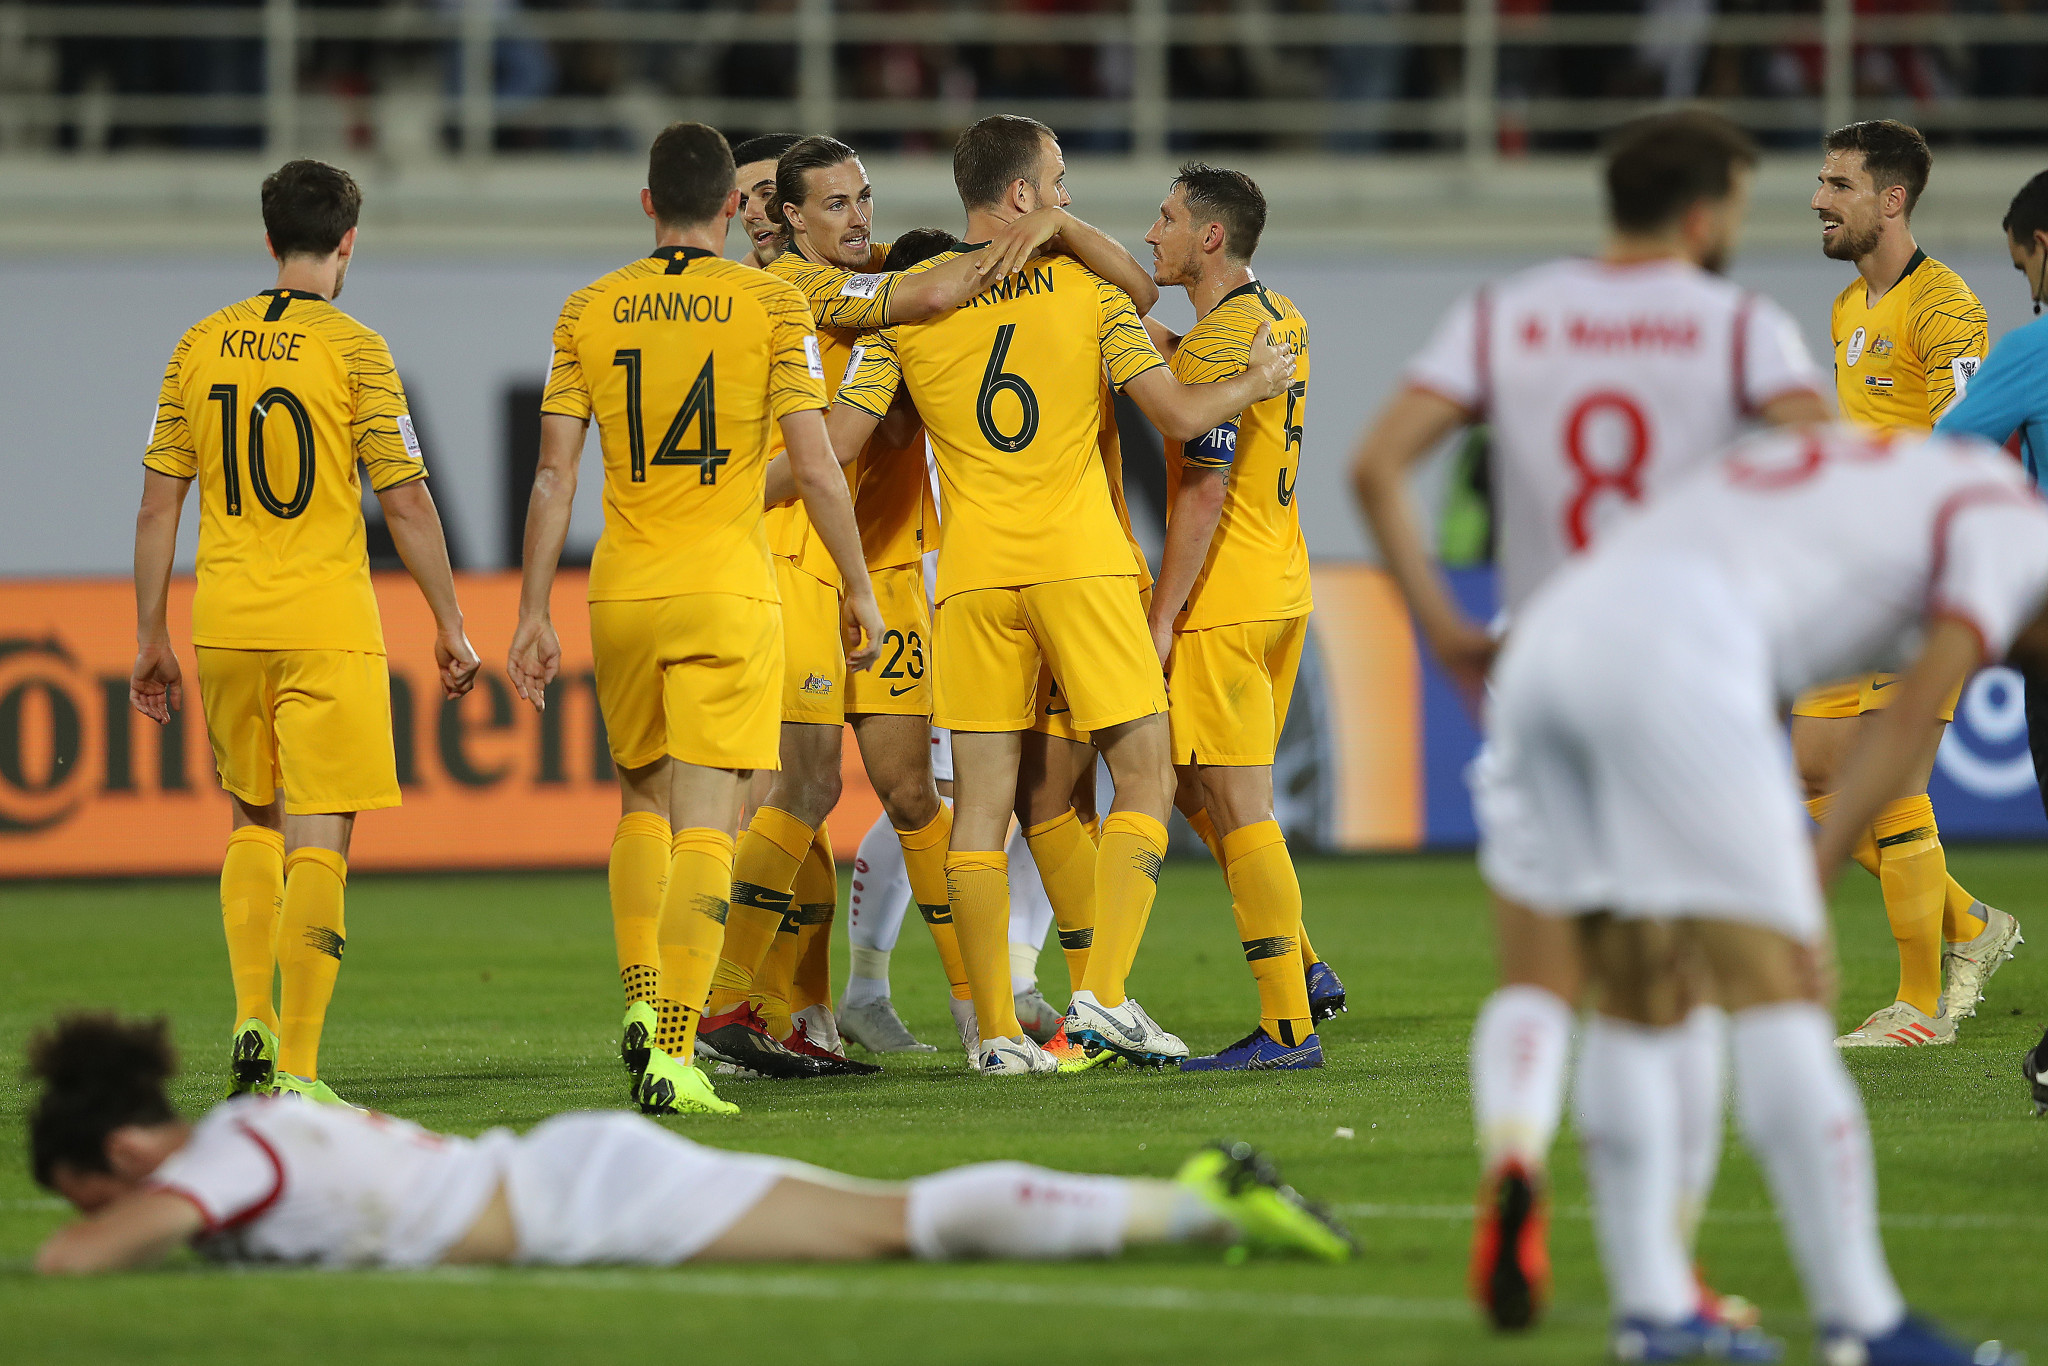 Tom Rogic fired home an injury-time winner as Asian Cup holders Australia progressed to the knock-out round ©Getty Images